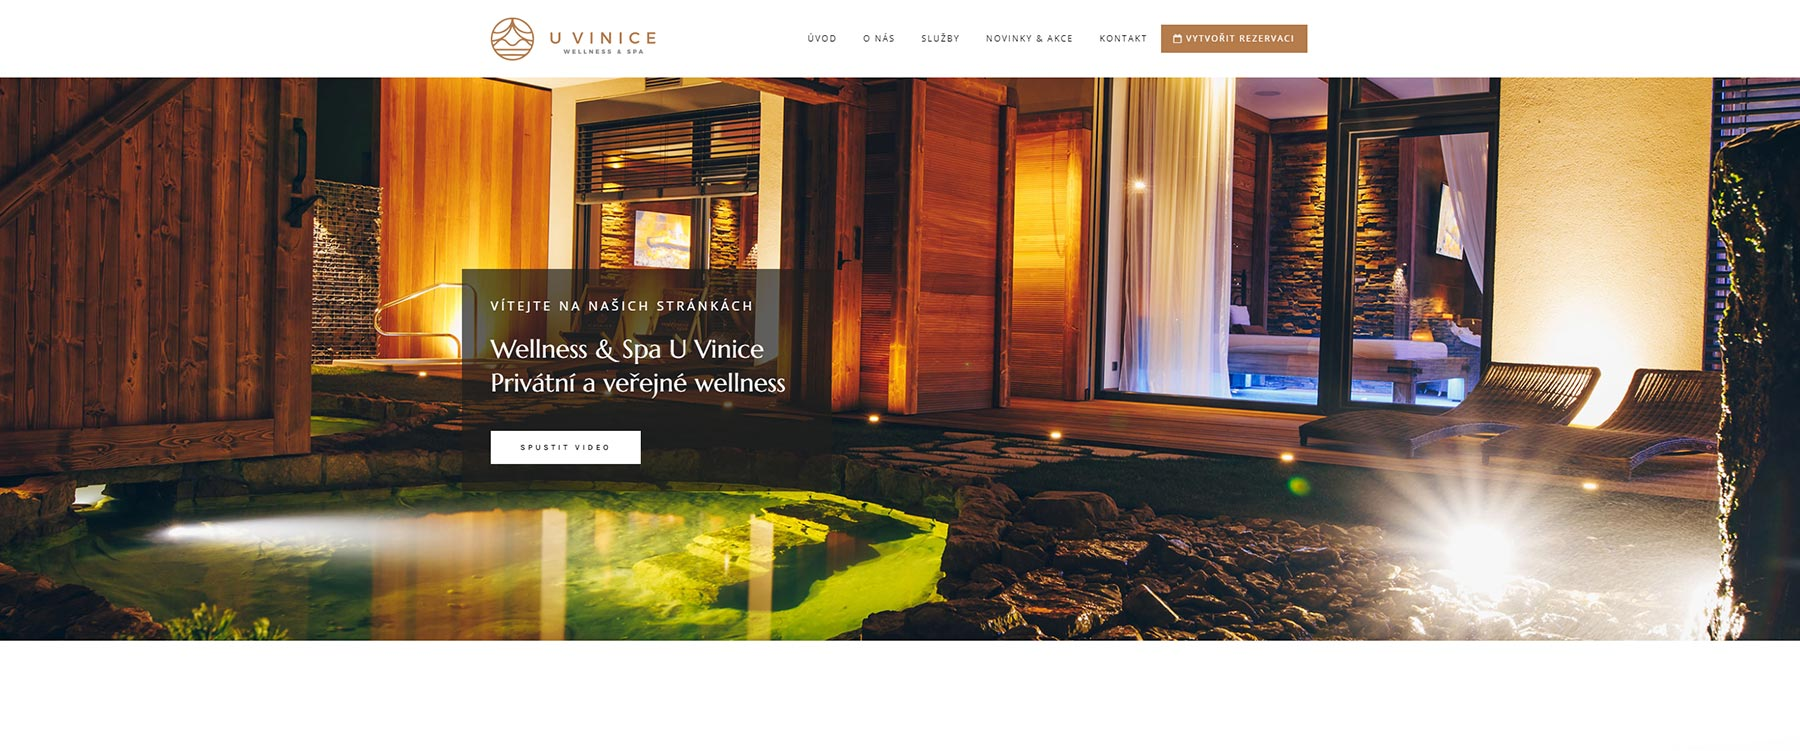 U Vinice Wellness & Spa